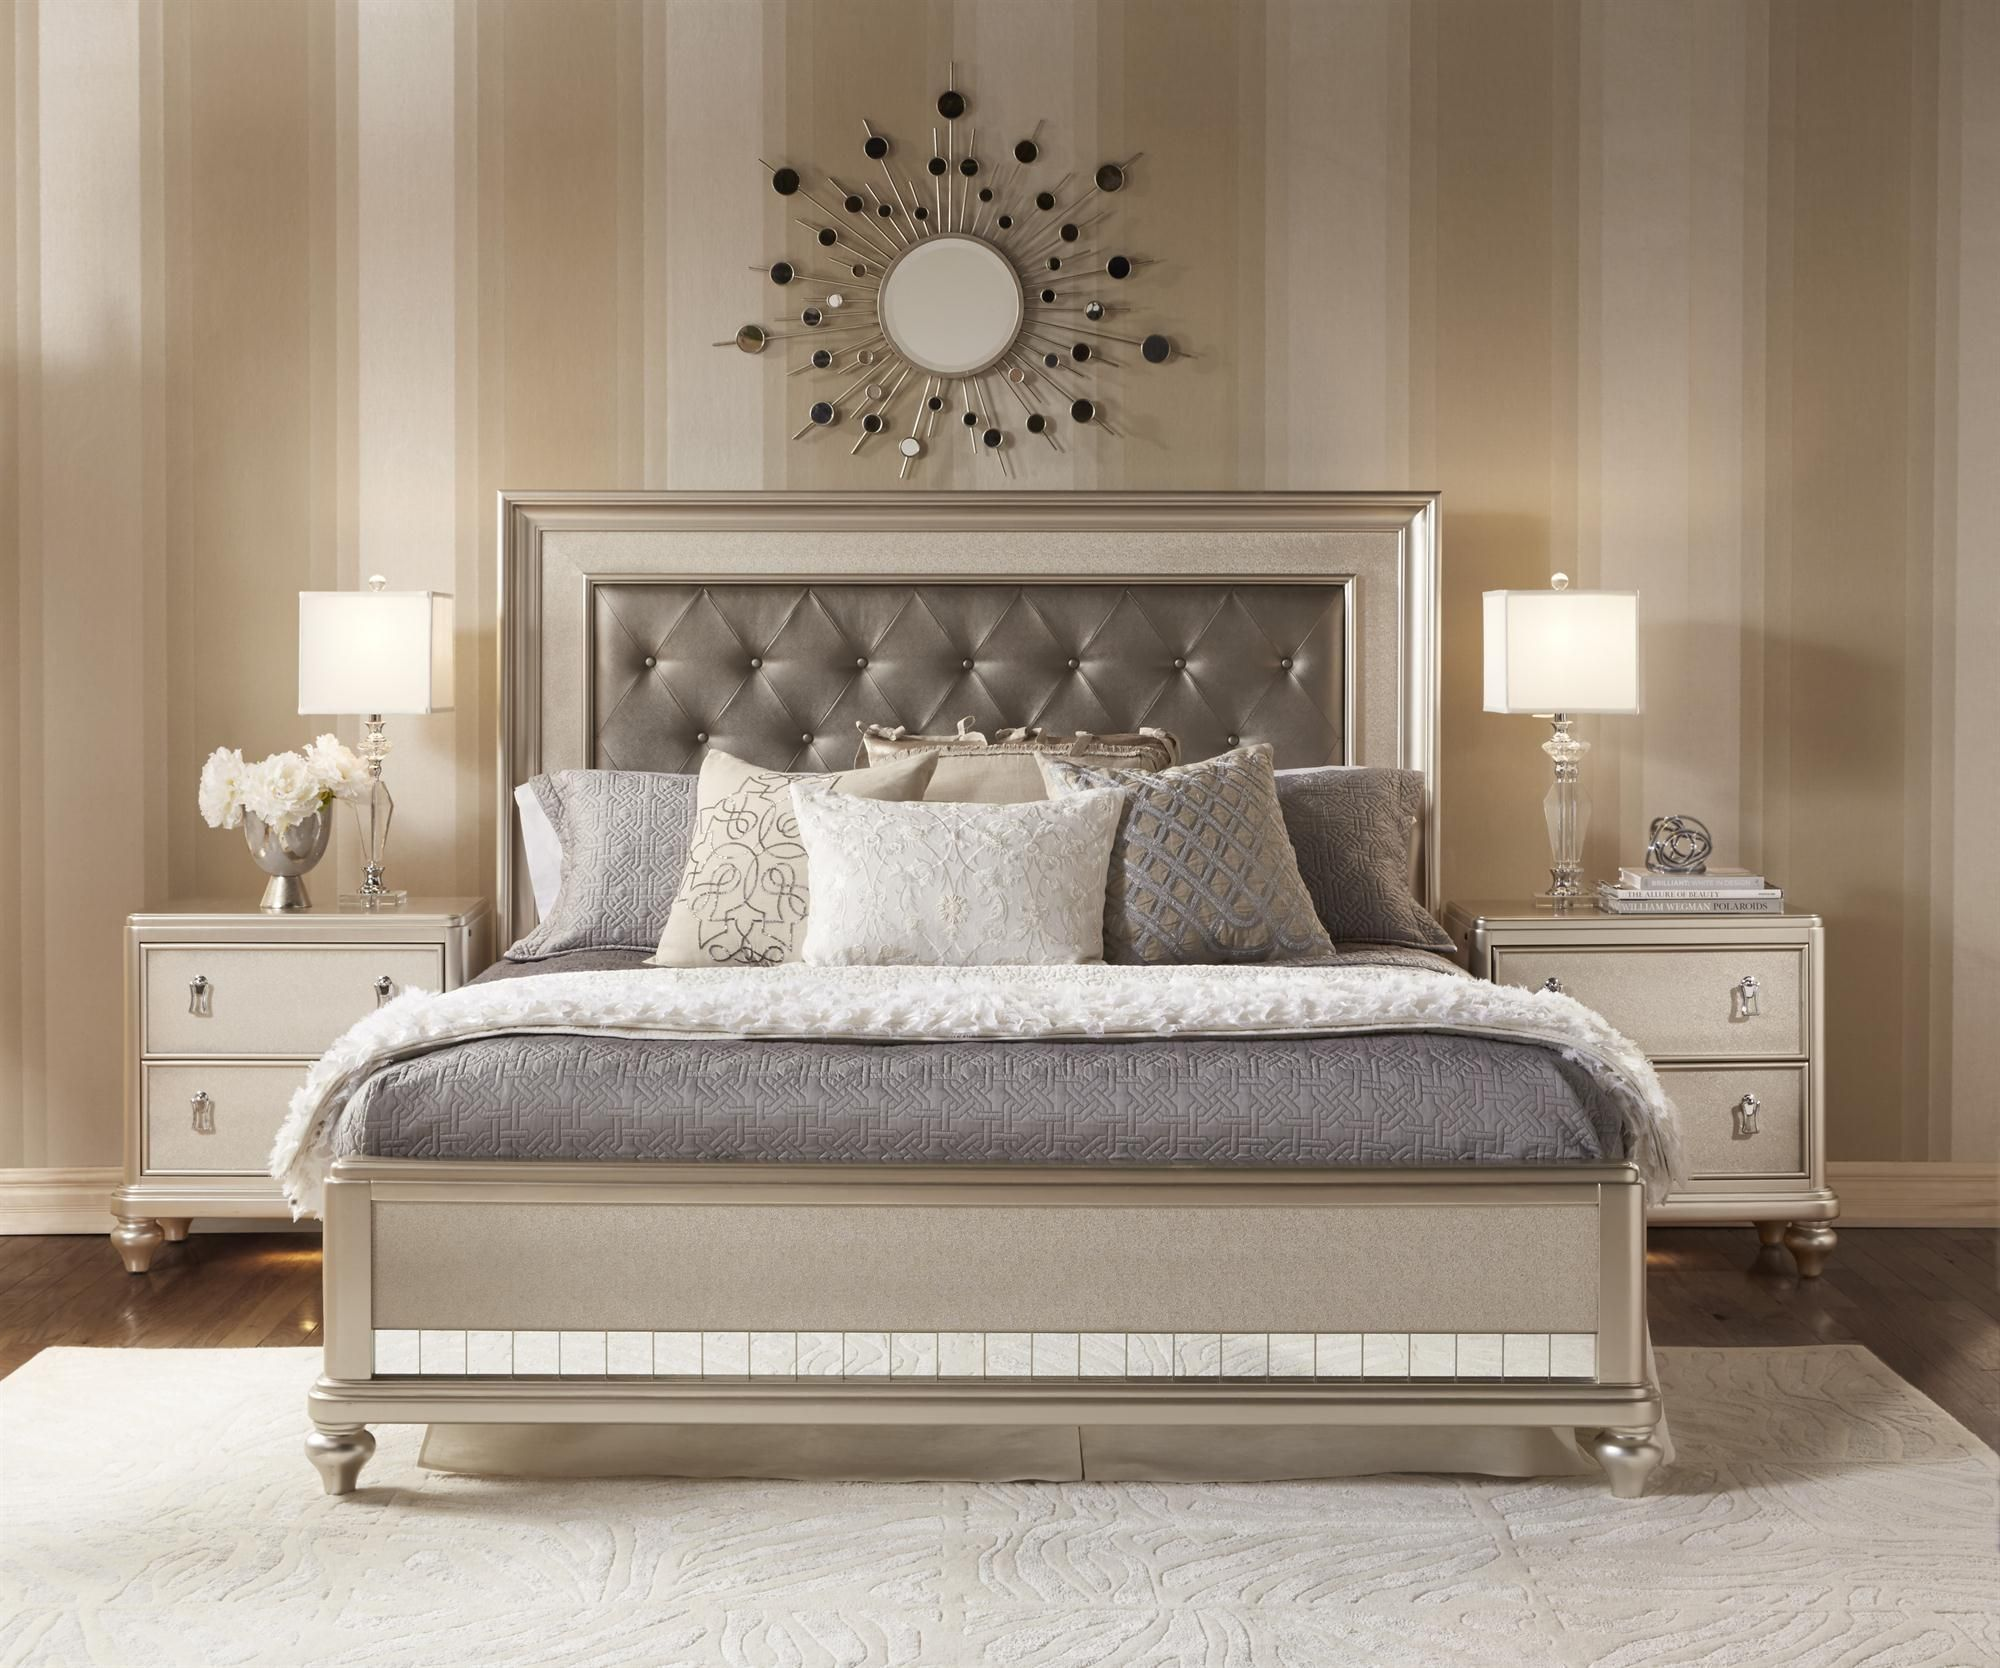 Diva King Bedroom Group by Samuel Lawrence | bedroom | Pinterest ...